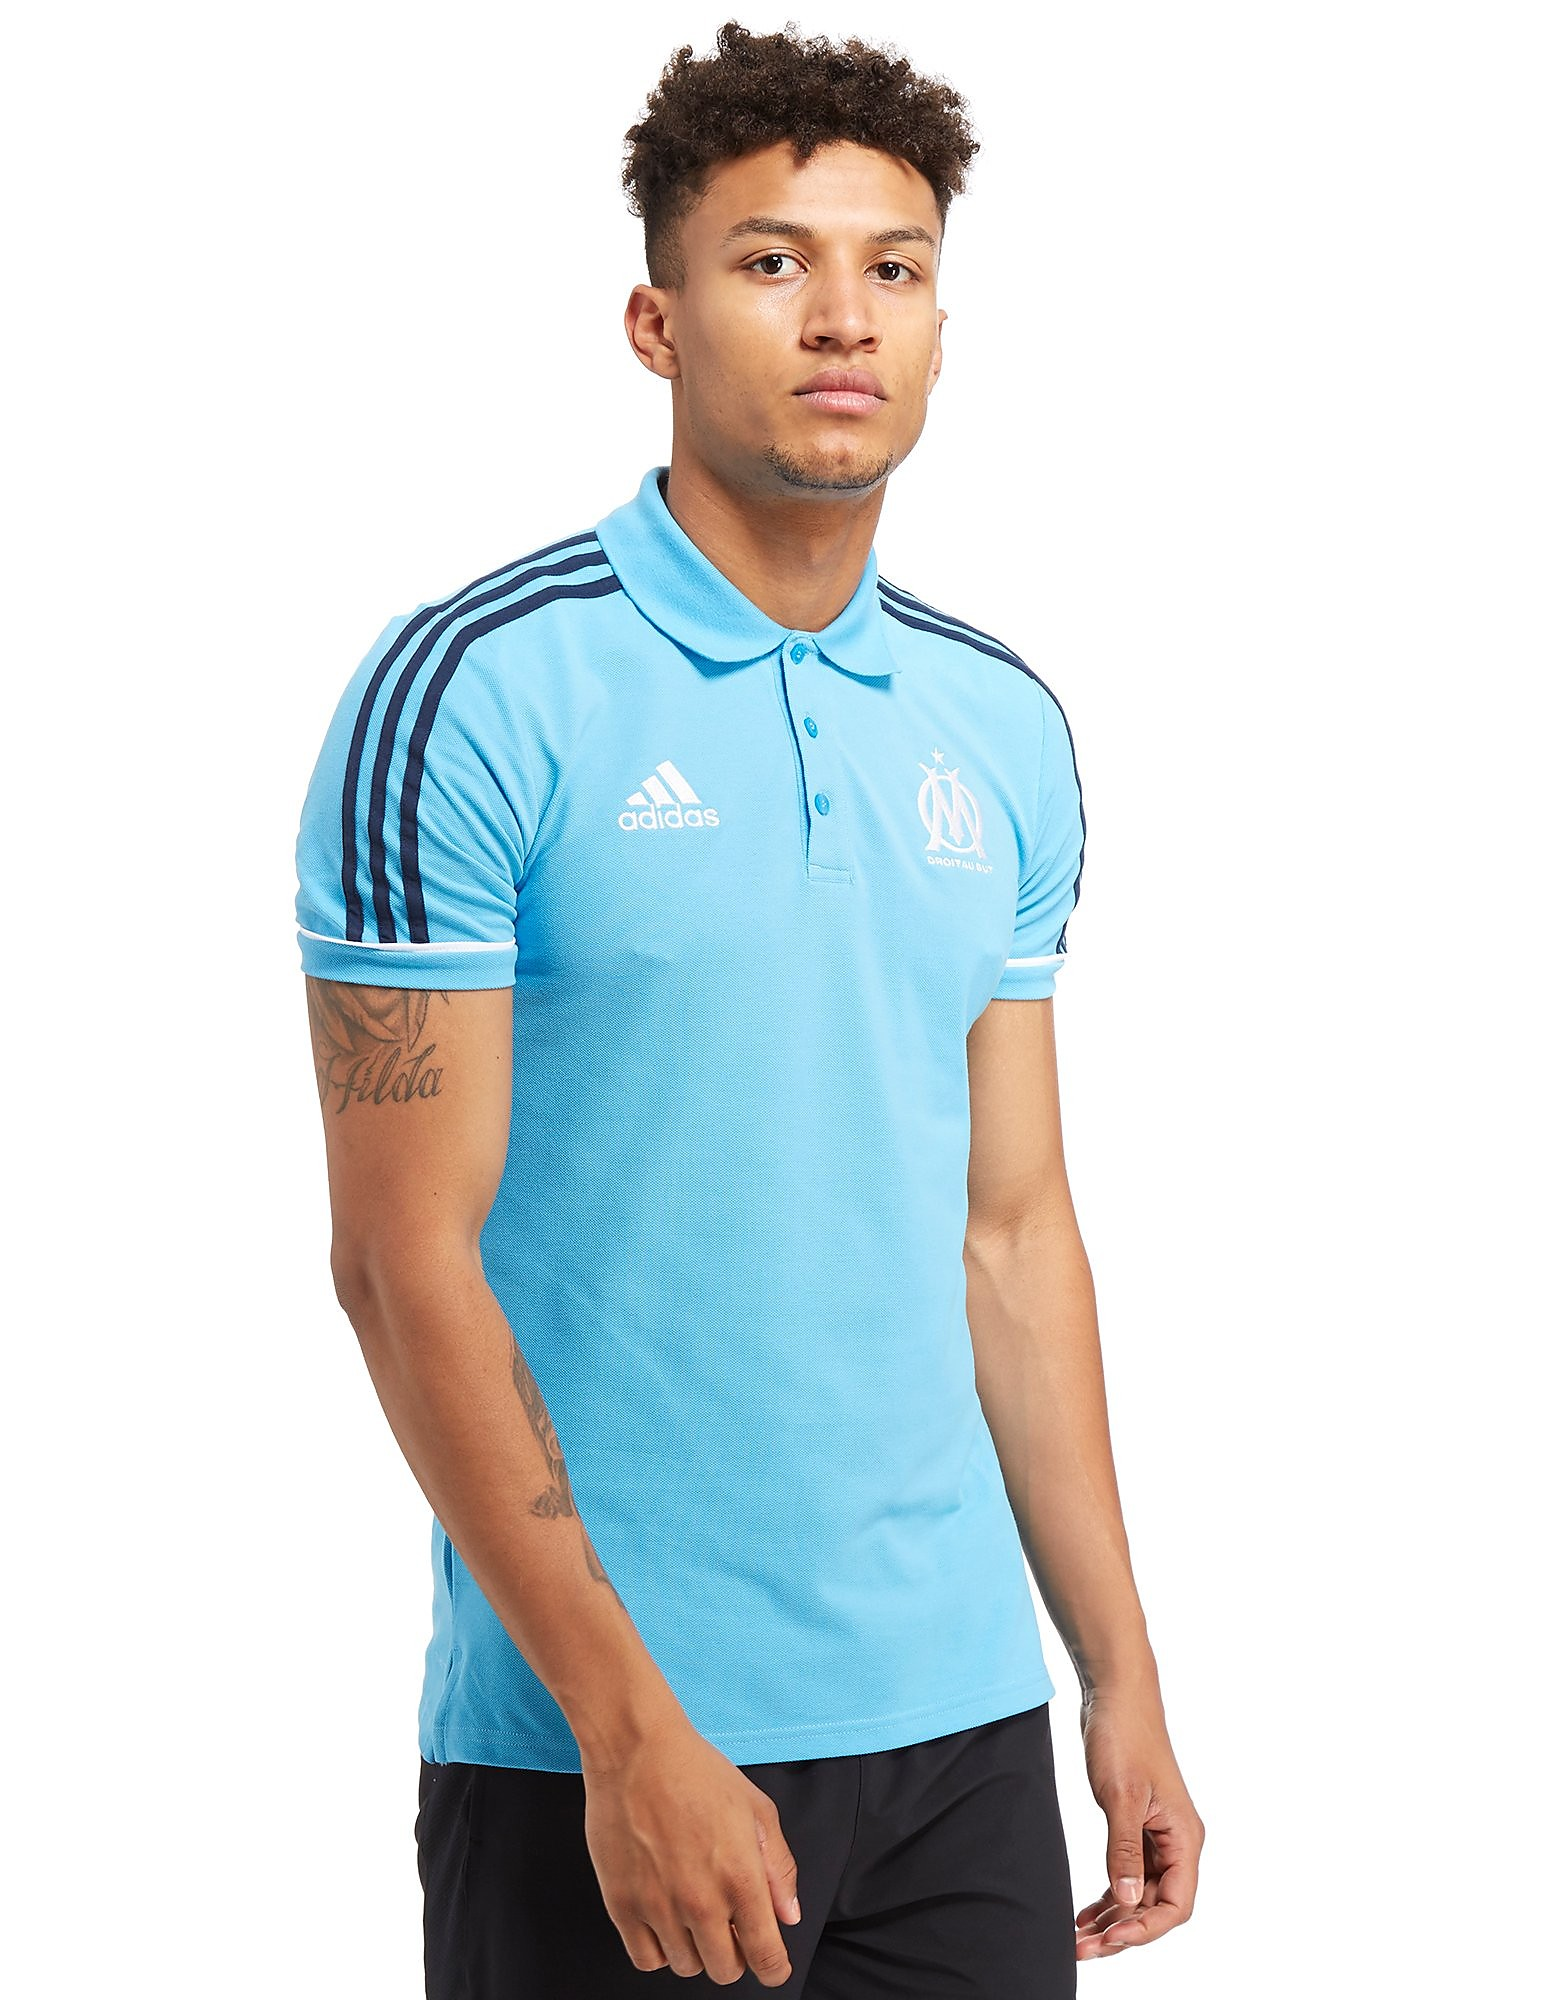 adidas polo Olympique de Marsella 2017